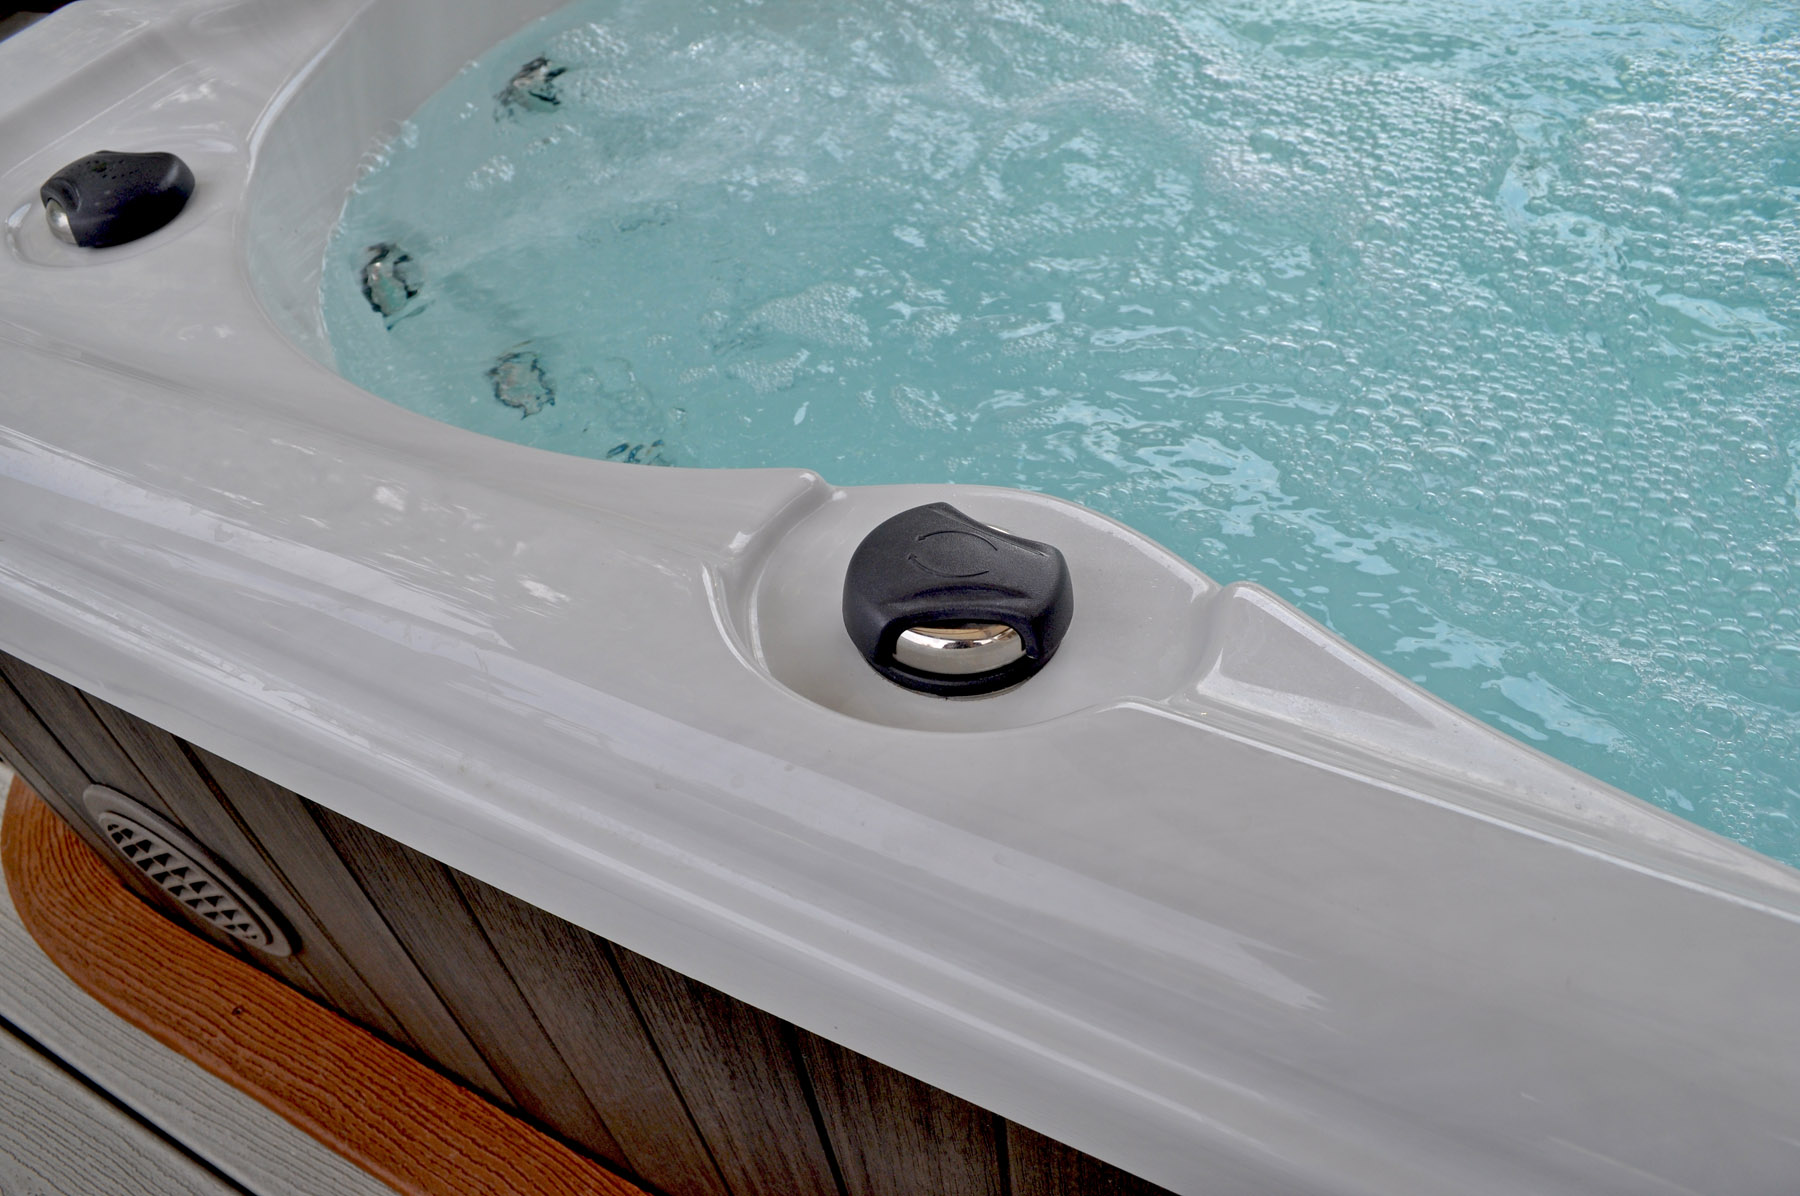 Hydropool serenity hot tub 6000 wellnessdrops - Pool aufstellbar ...